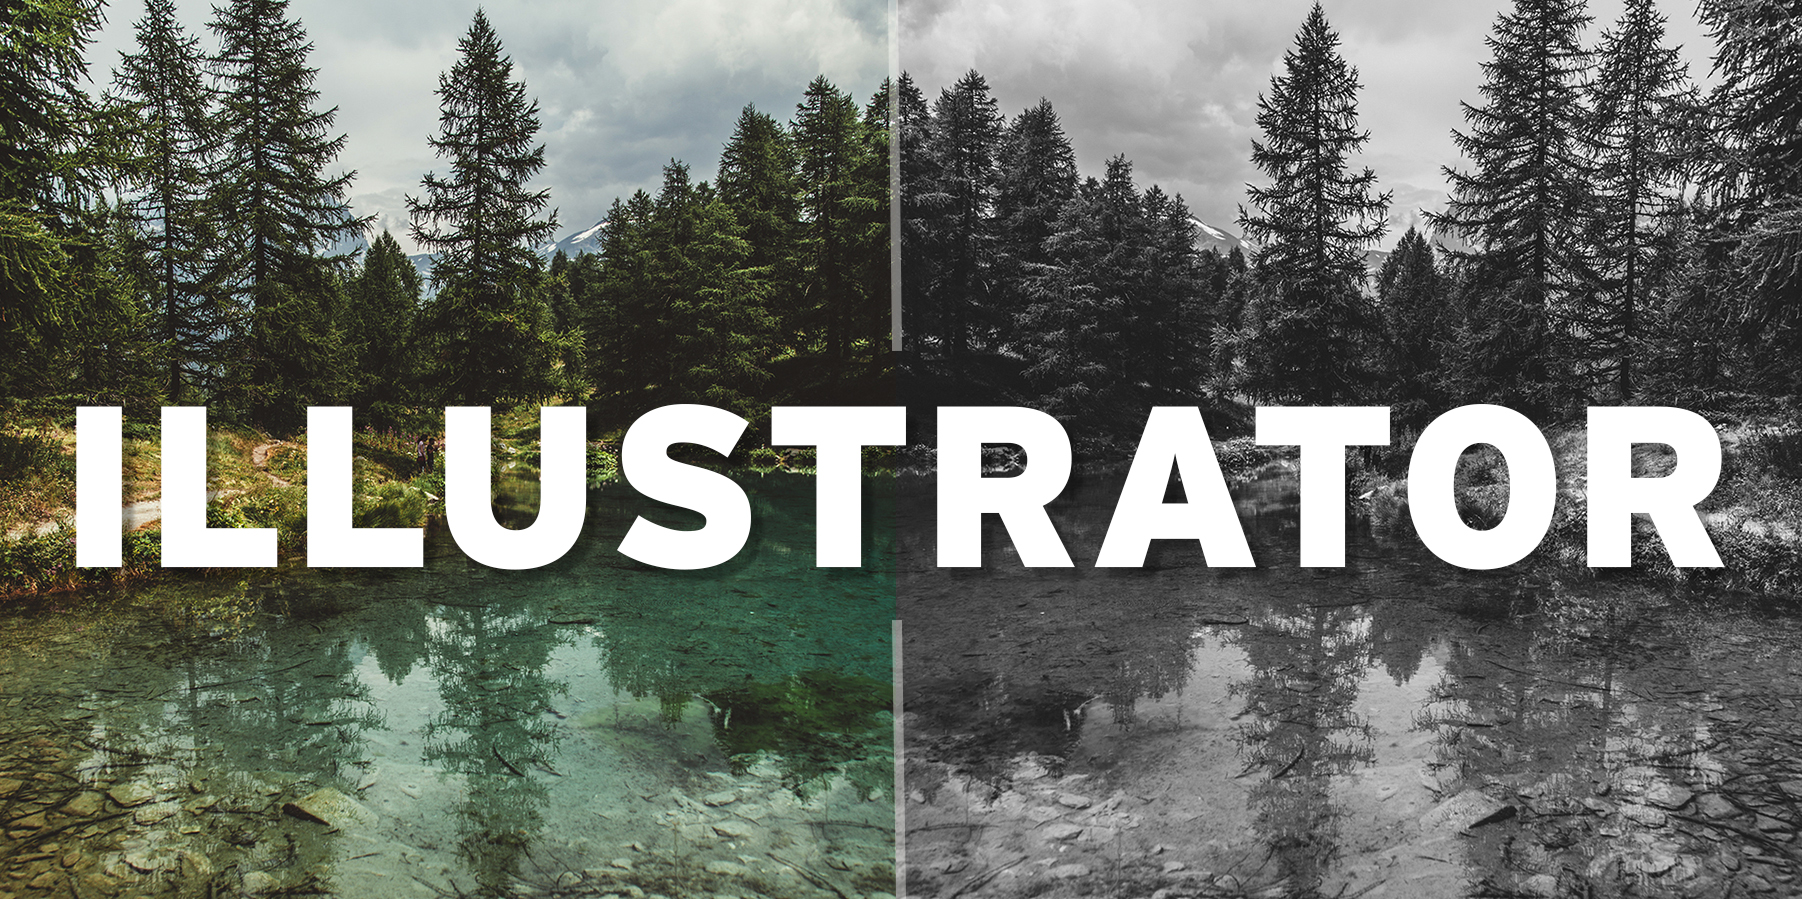 Illustrator: Converting color to grayscale